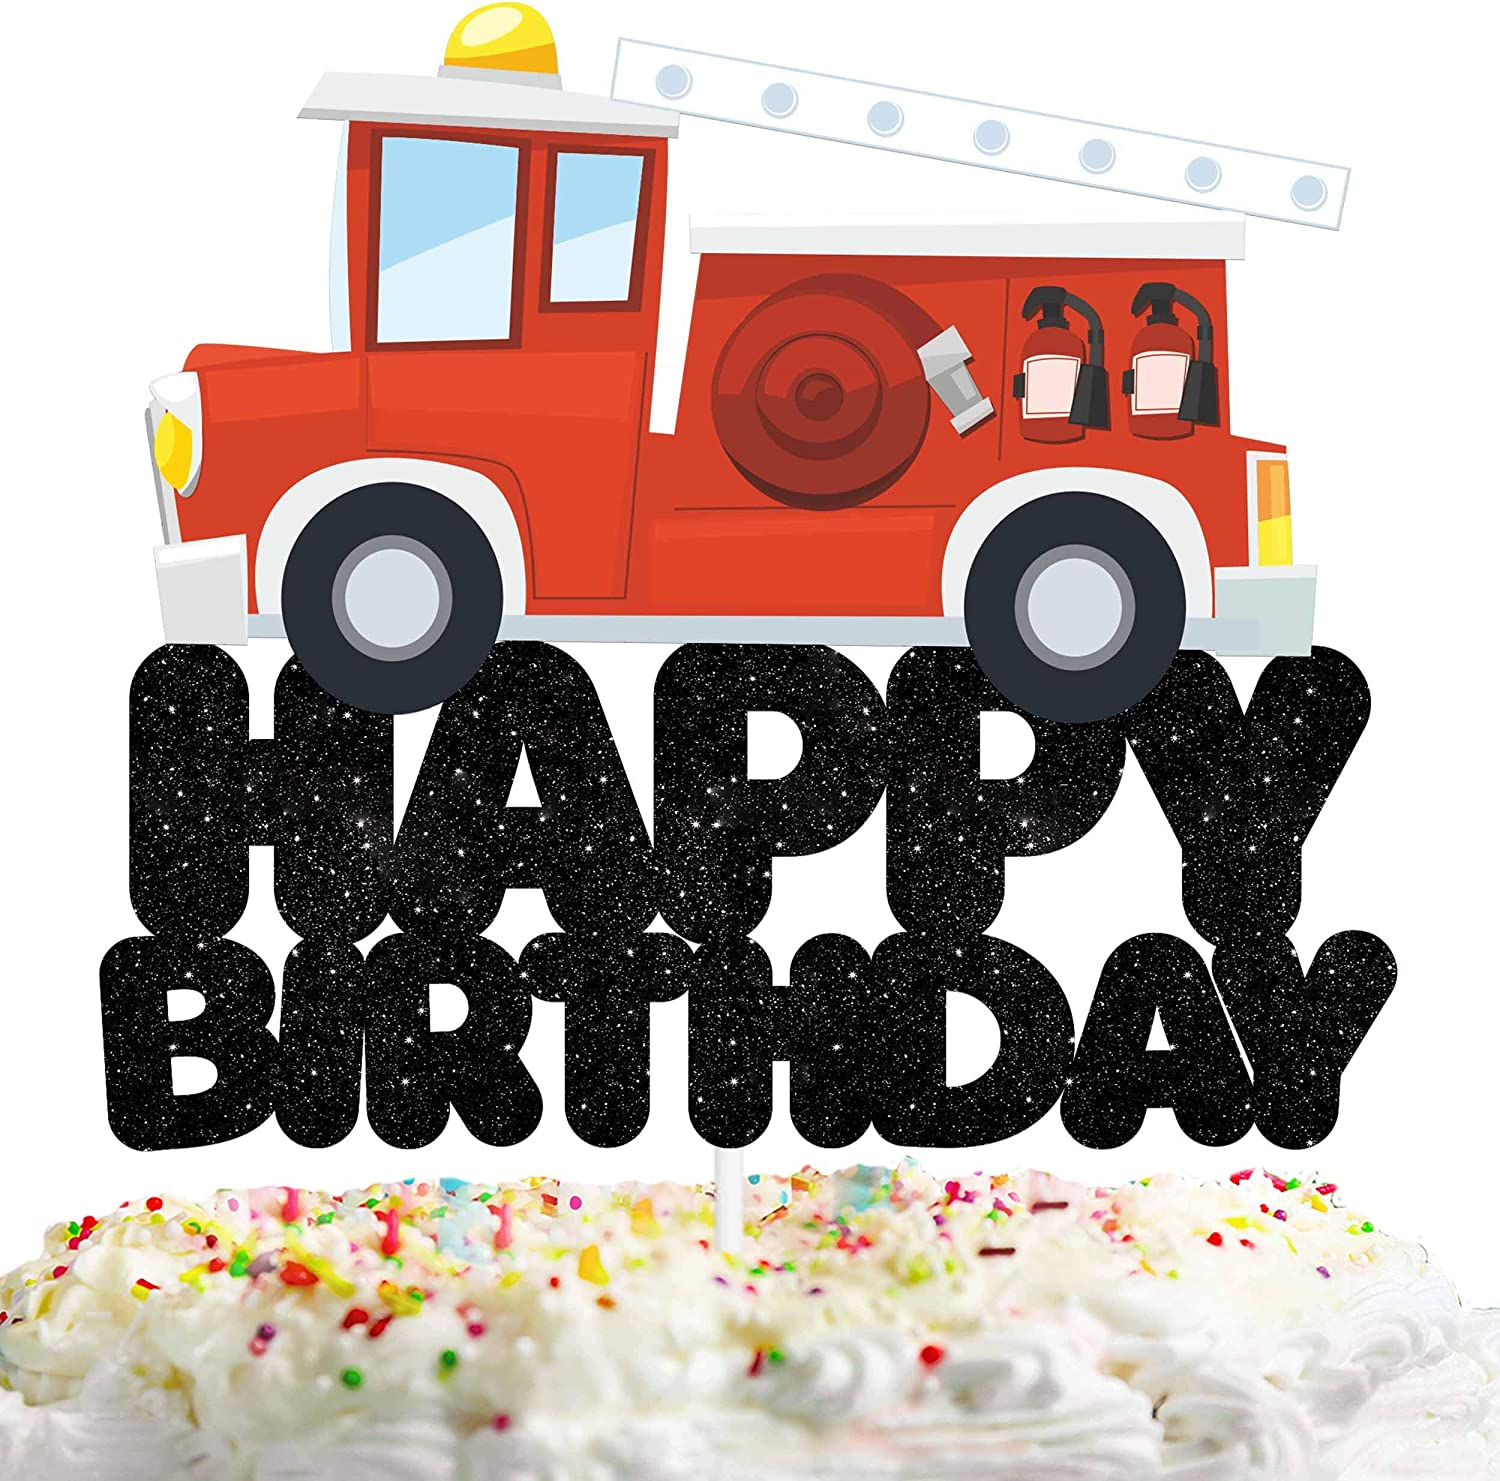 Amazon Com Happy Birthday Cake Topper Decorations With Fire Engine For Rescue Theme Picks For Baby Shower Party Decor Supplies Toys Games